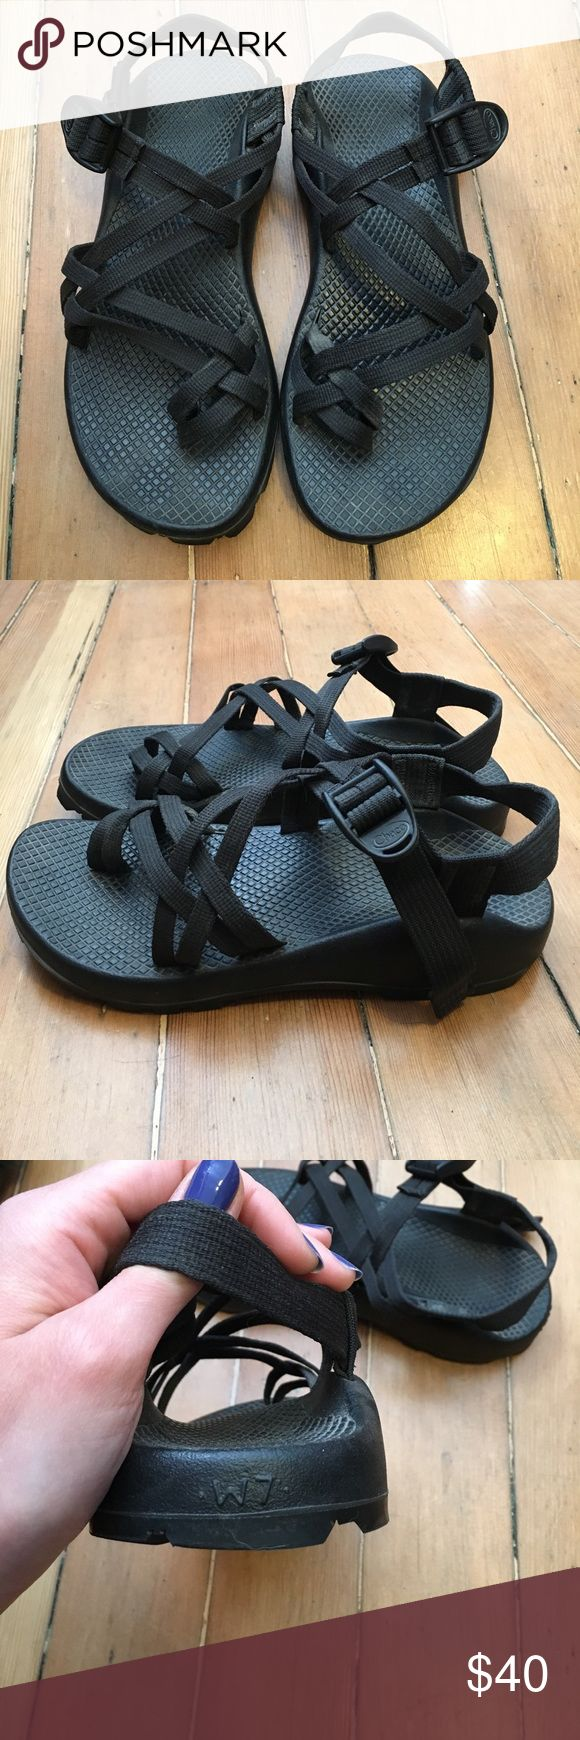 Black Chaco Sandals Awesome strappy sandals! Super cute and perfect for spring/summer adventures! Chaco Shoes Sandals